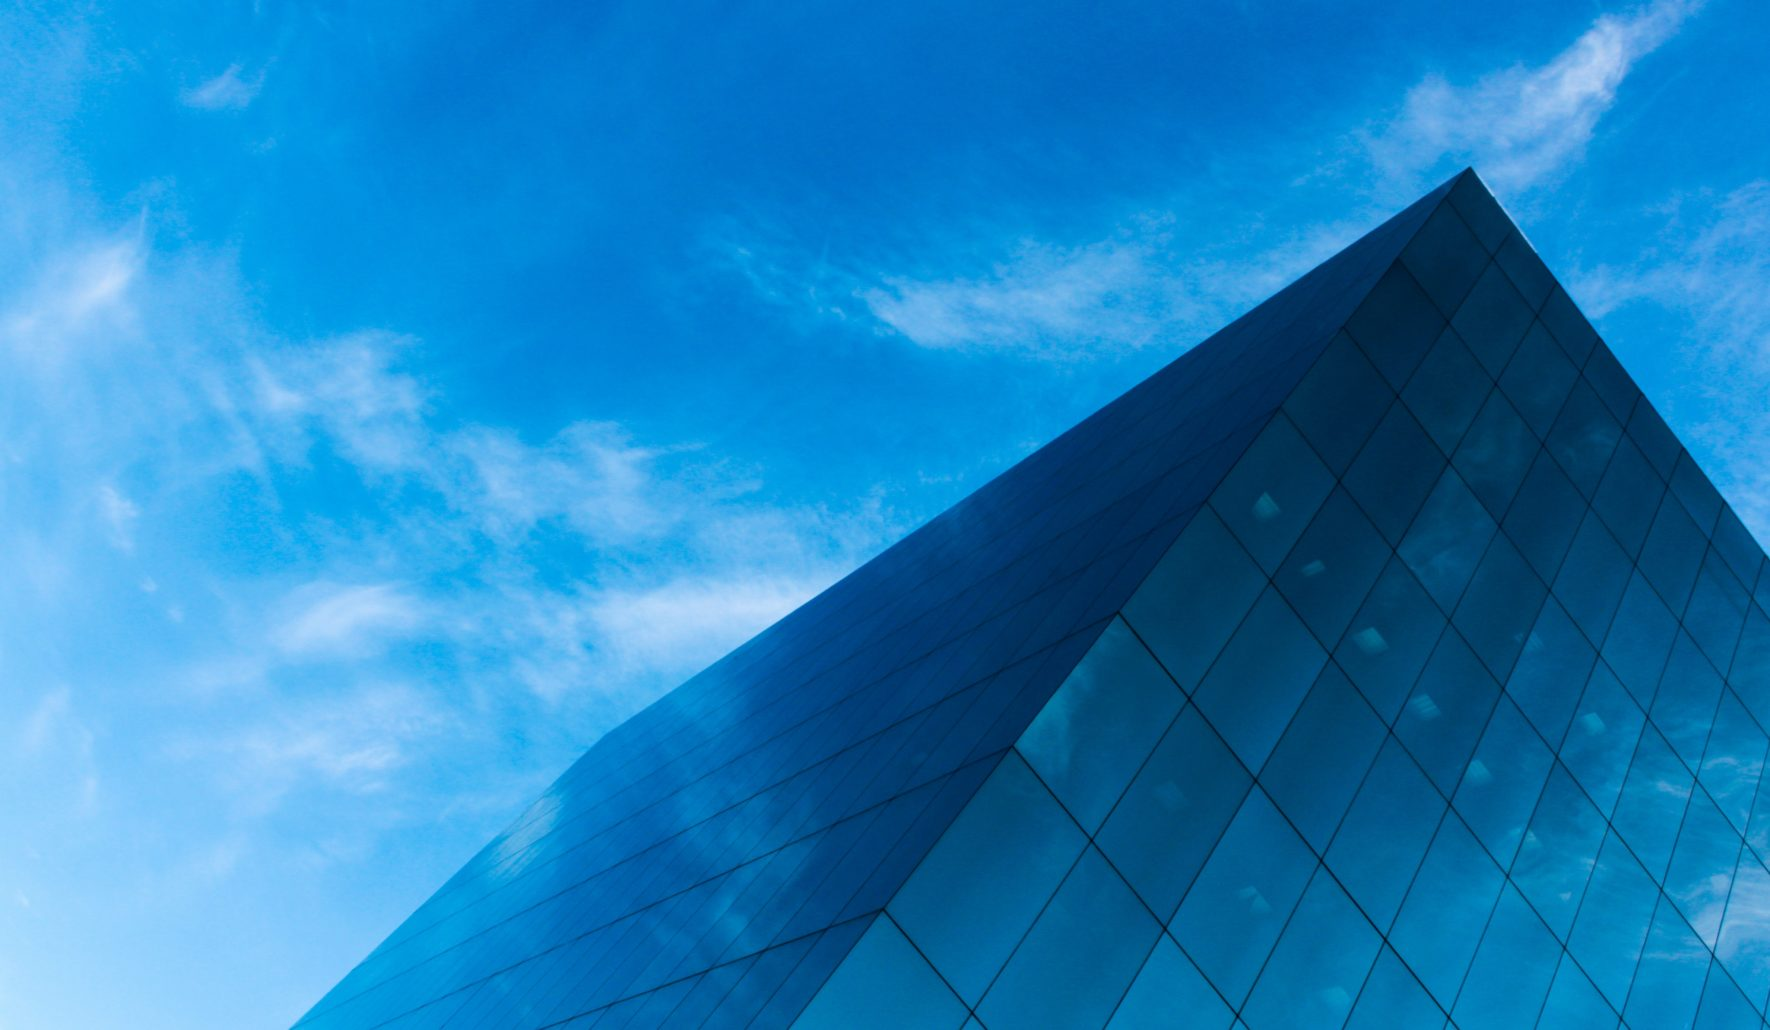 building in the clouds to represent how evaluating HR processes lead to the cloud